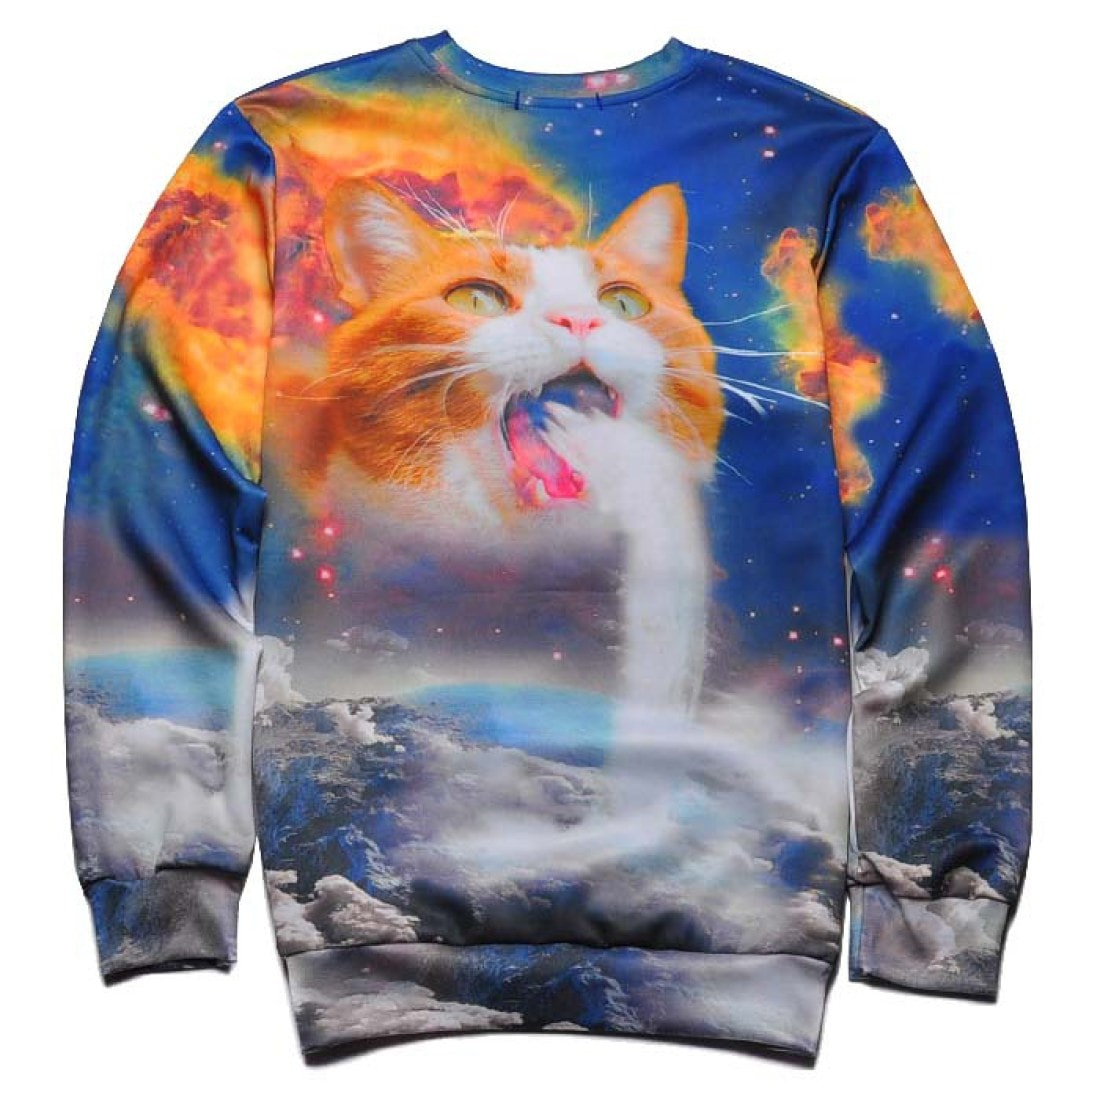 Kitty Cat Puking Waterfall in Space Print Unisex Pullover Sweatshirt